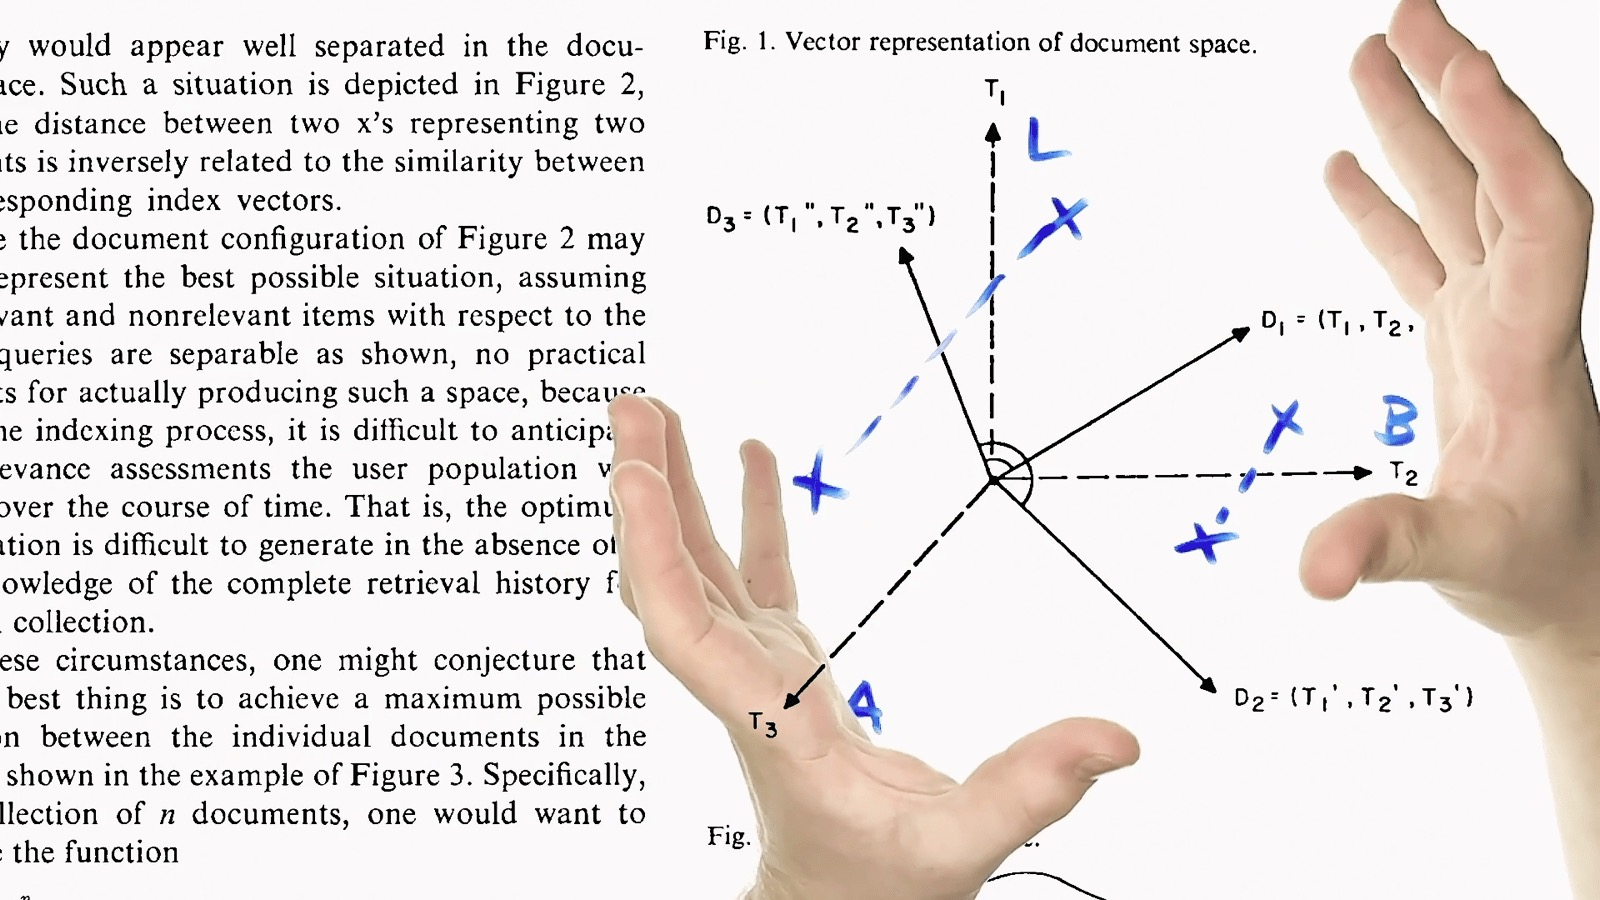 A picture of two hands, one holding a red marker, hovering over a page of a computer science research paper with a diagram and some text.